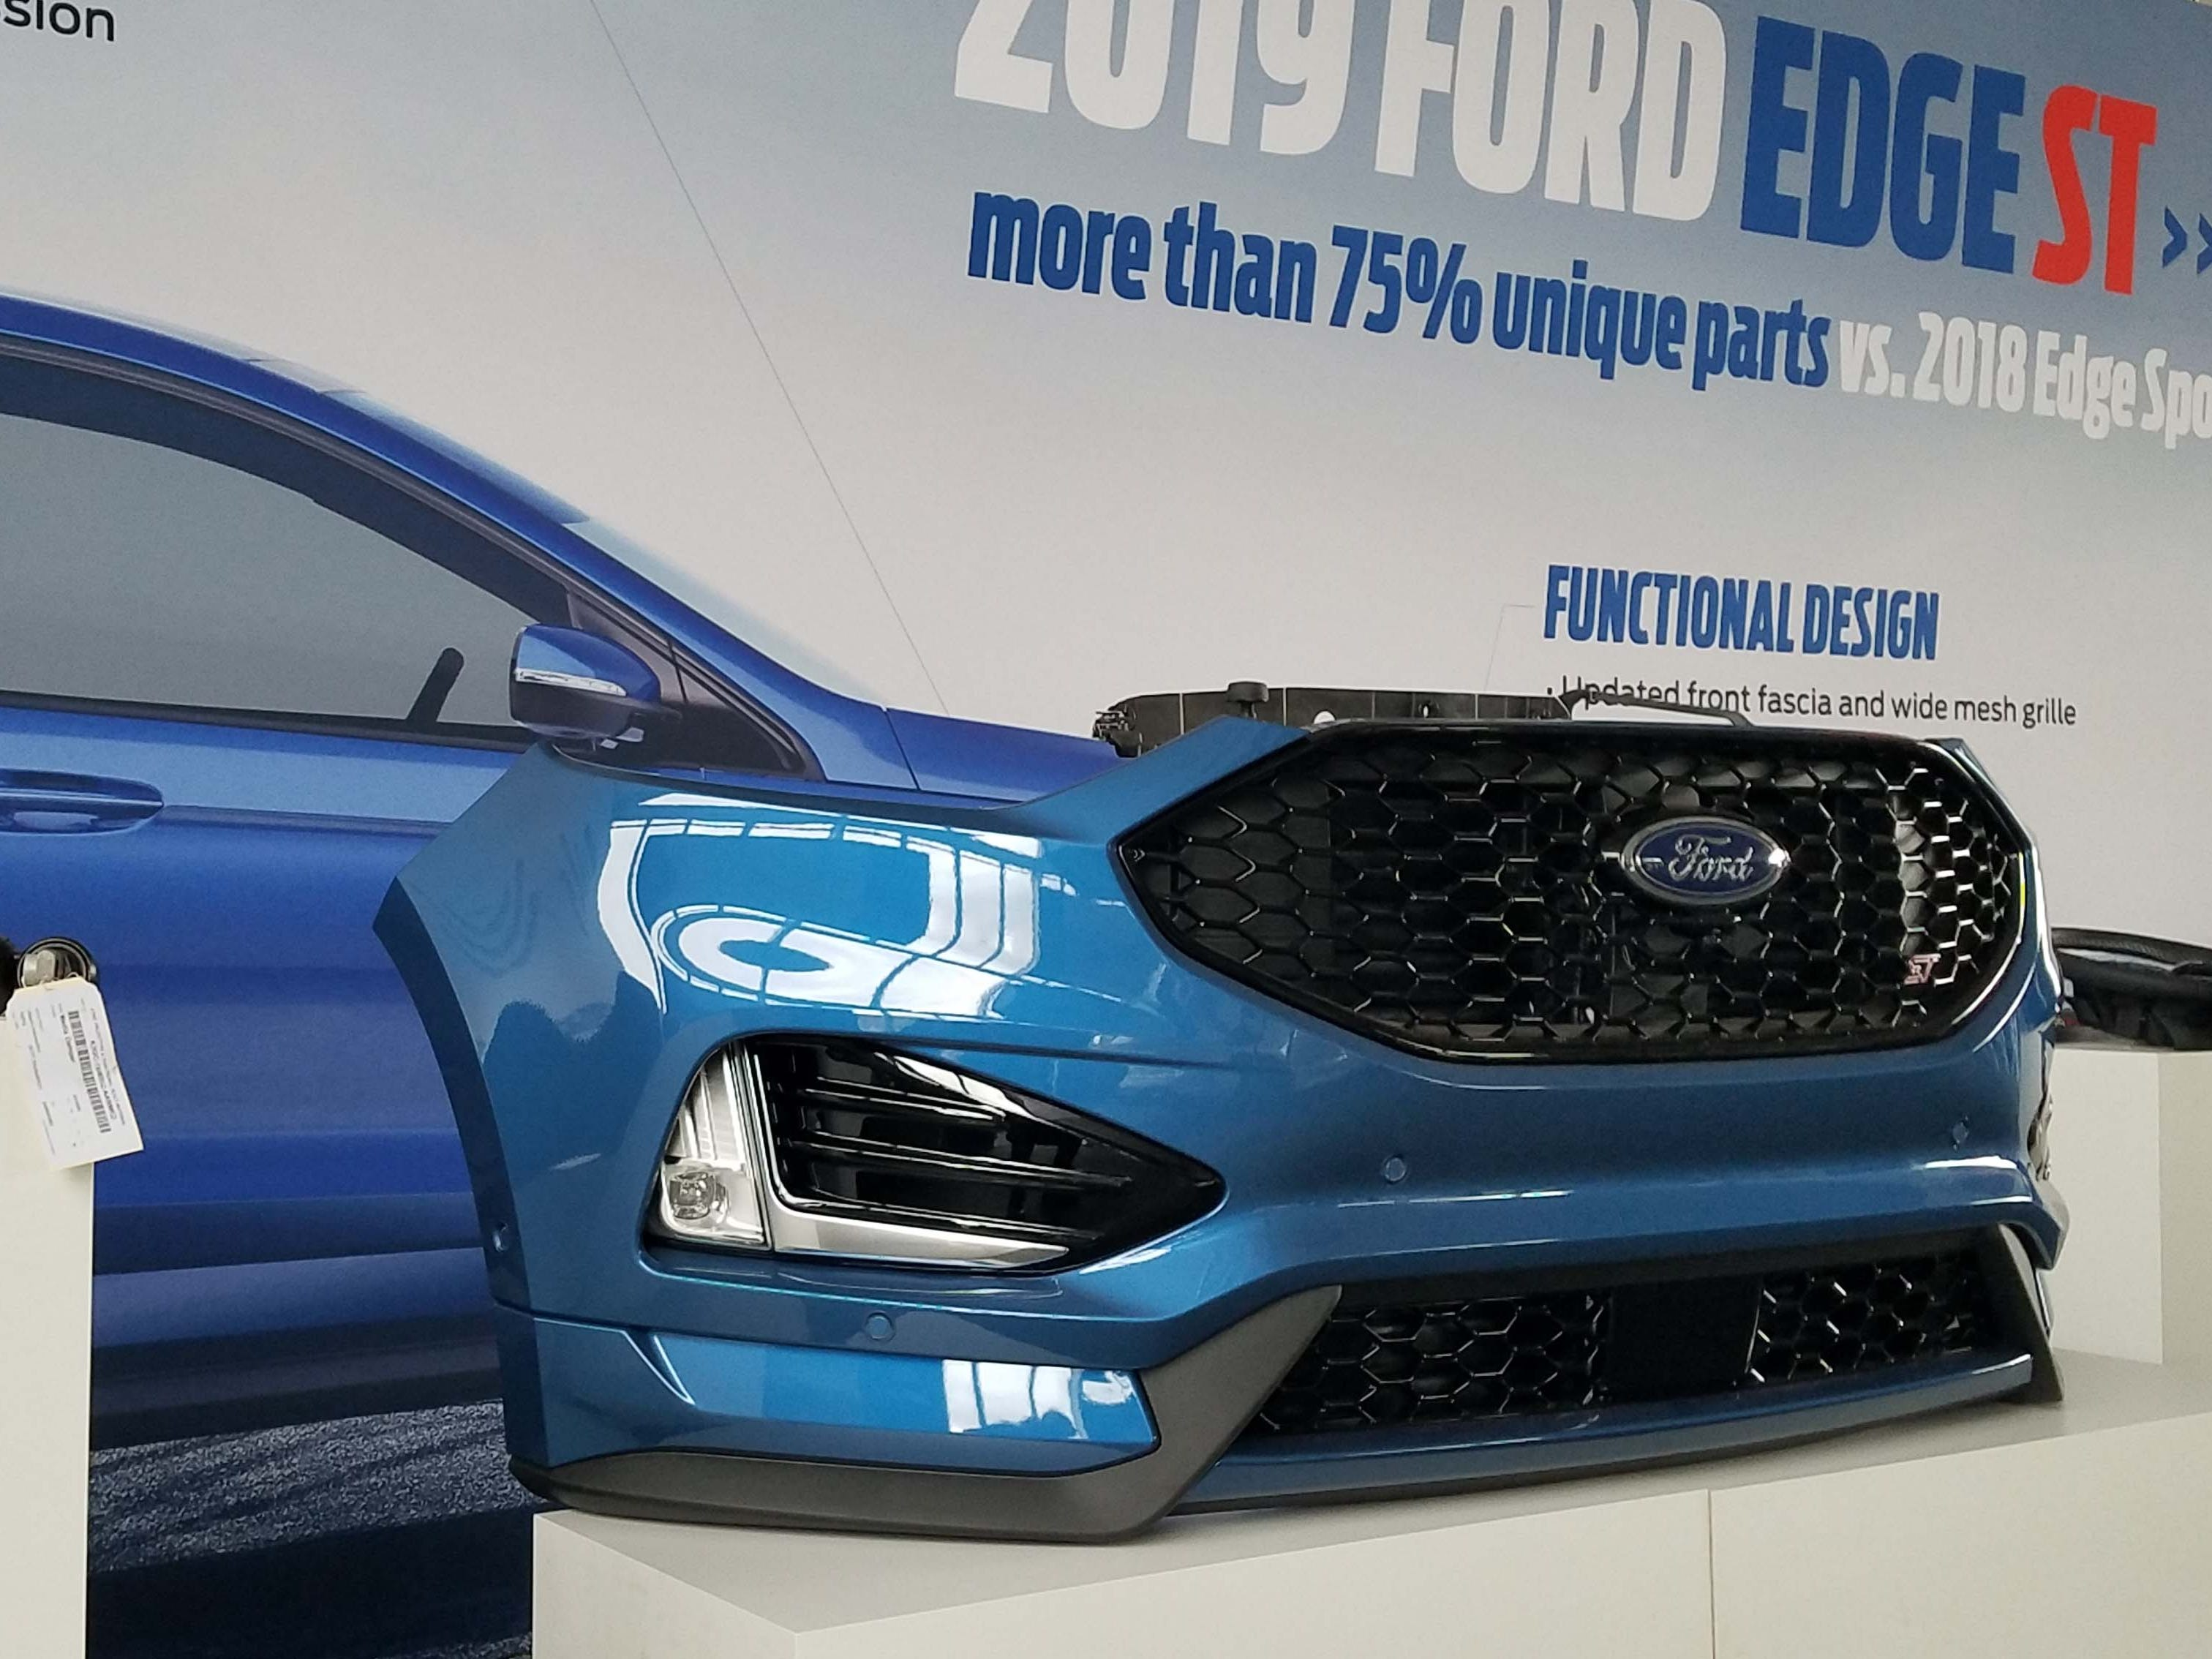 New face: The 2019 Ford Edge ST has a unique front clip.